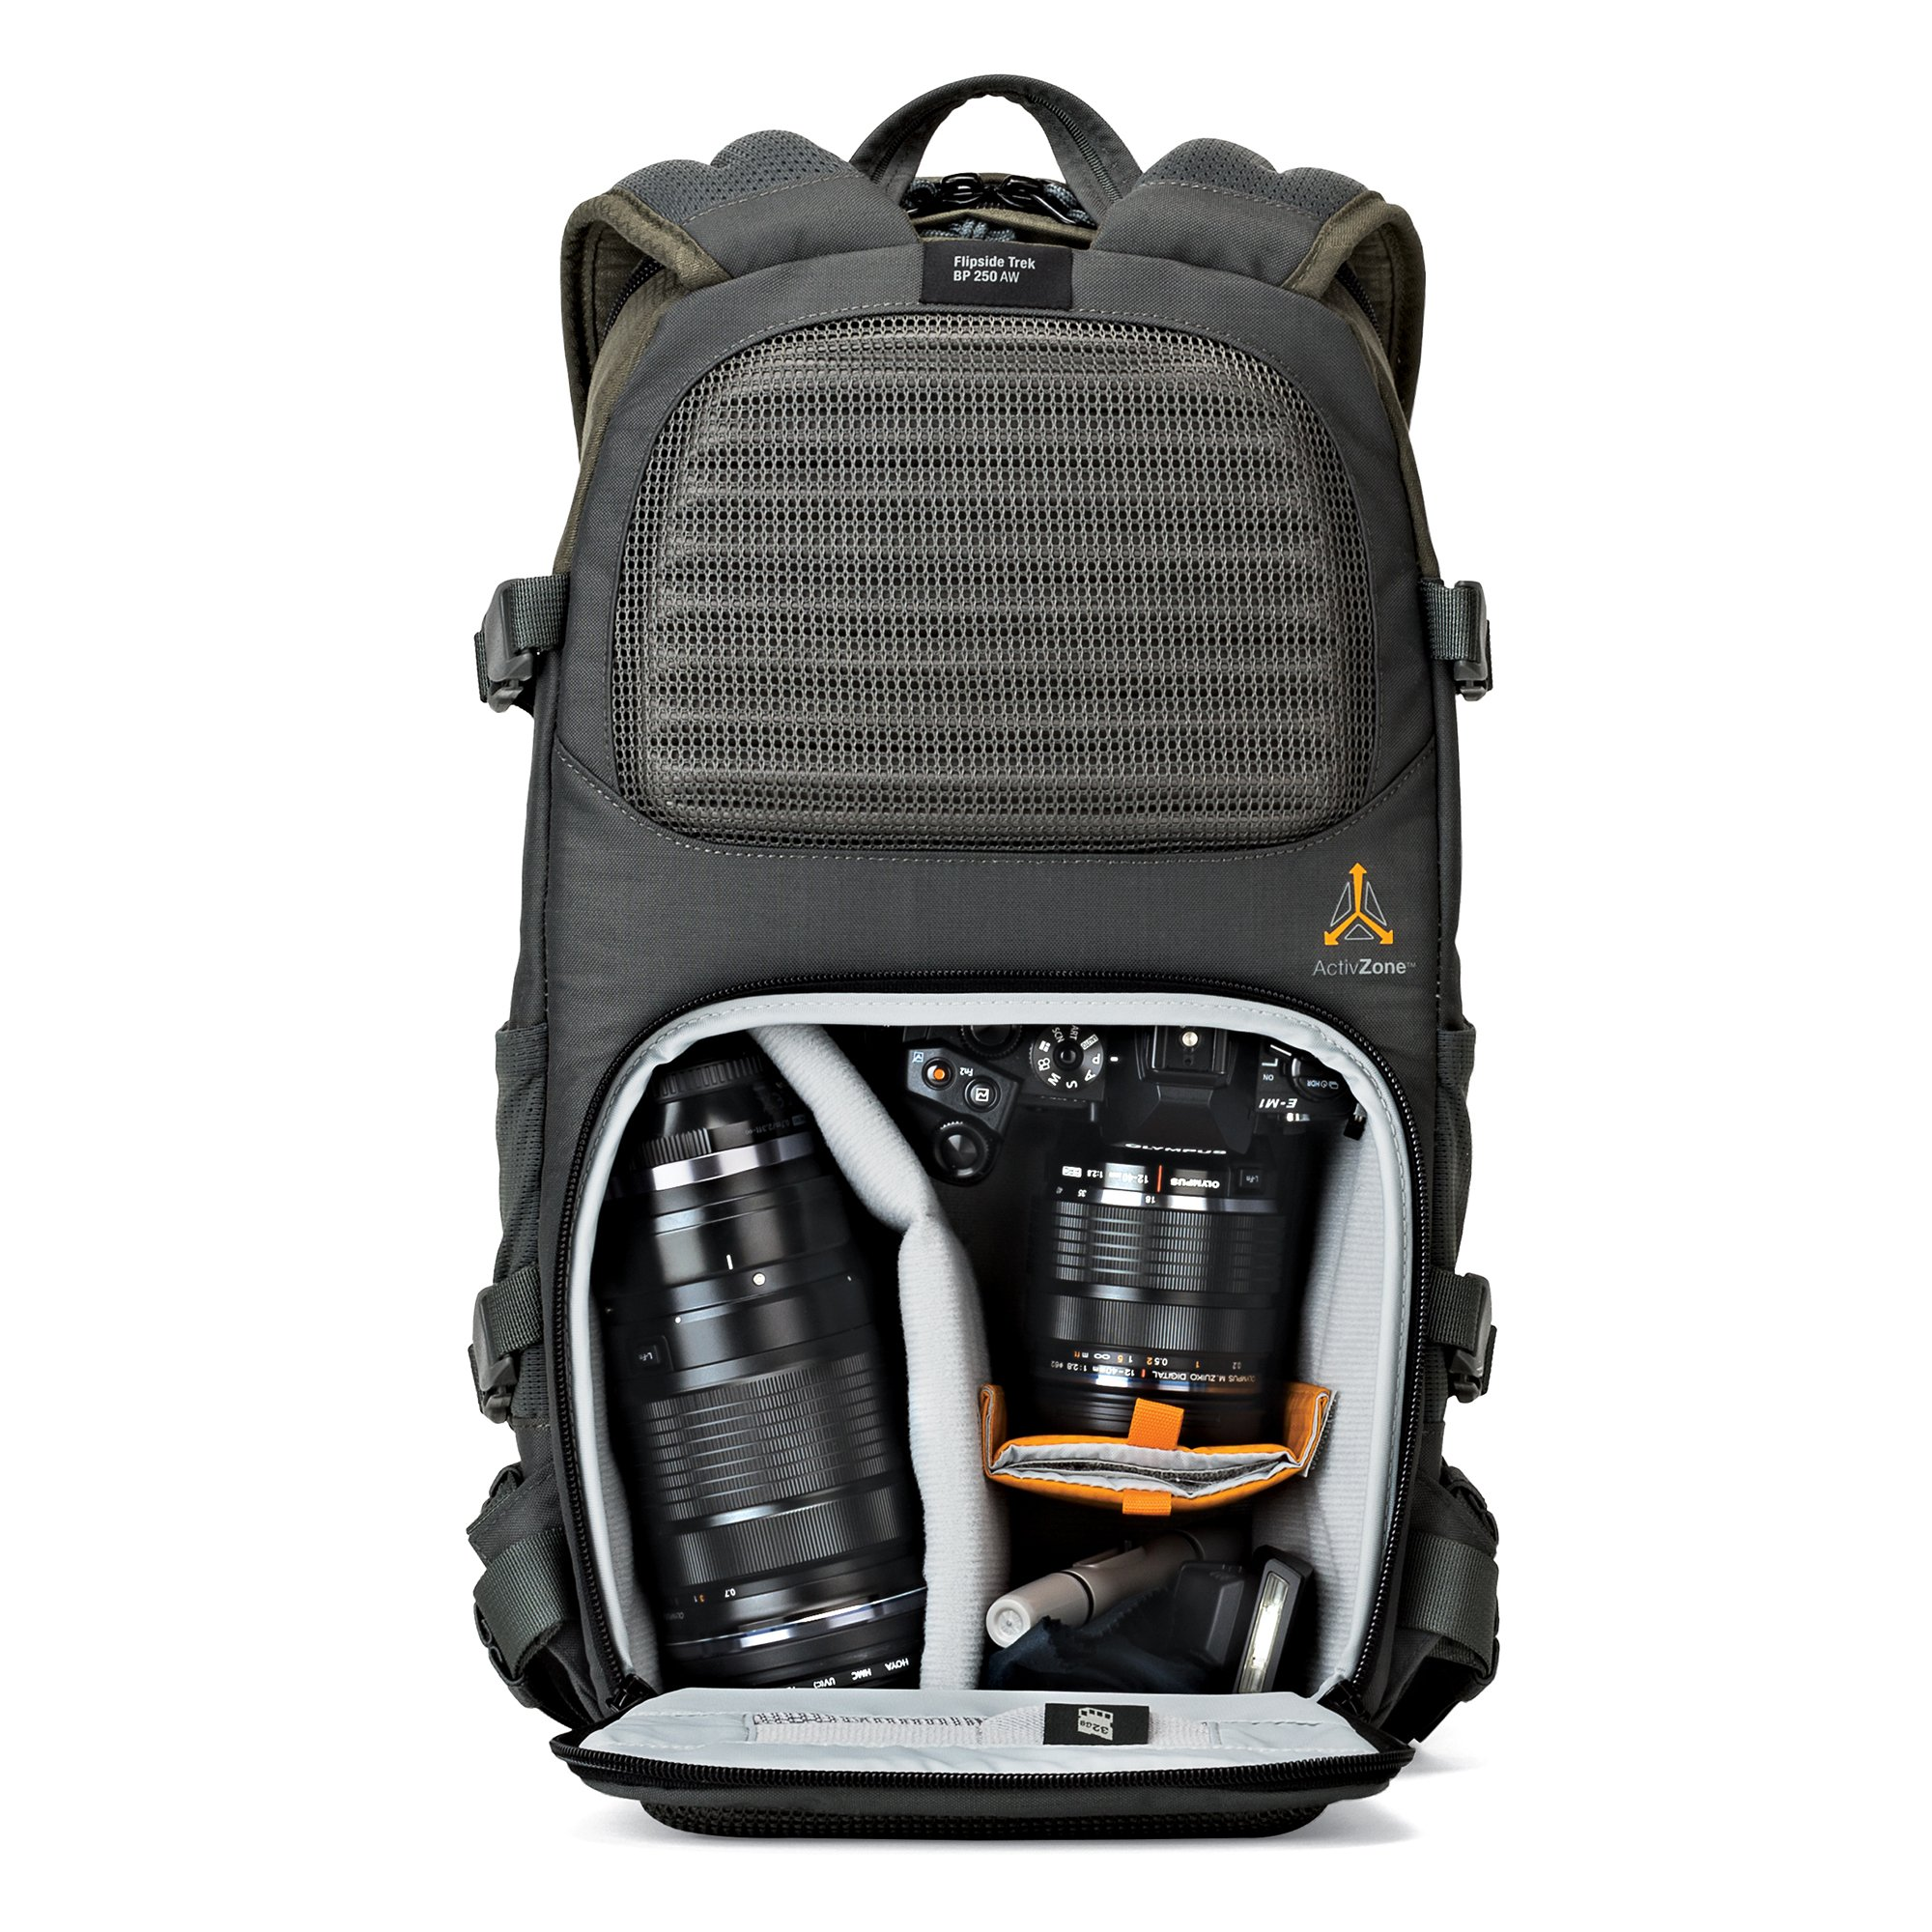 Lowepro Flipside Trek BP 250 AW - Outdoor Camera Backpack for Mirrorless or Compact DSLR w/ Rain Cover and Tablet Pocket. by Lowepro (Image #4)